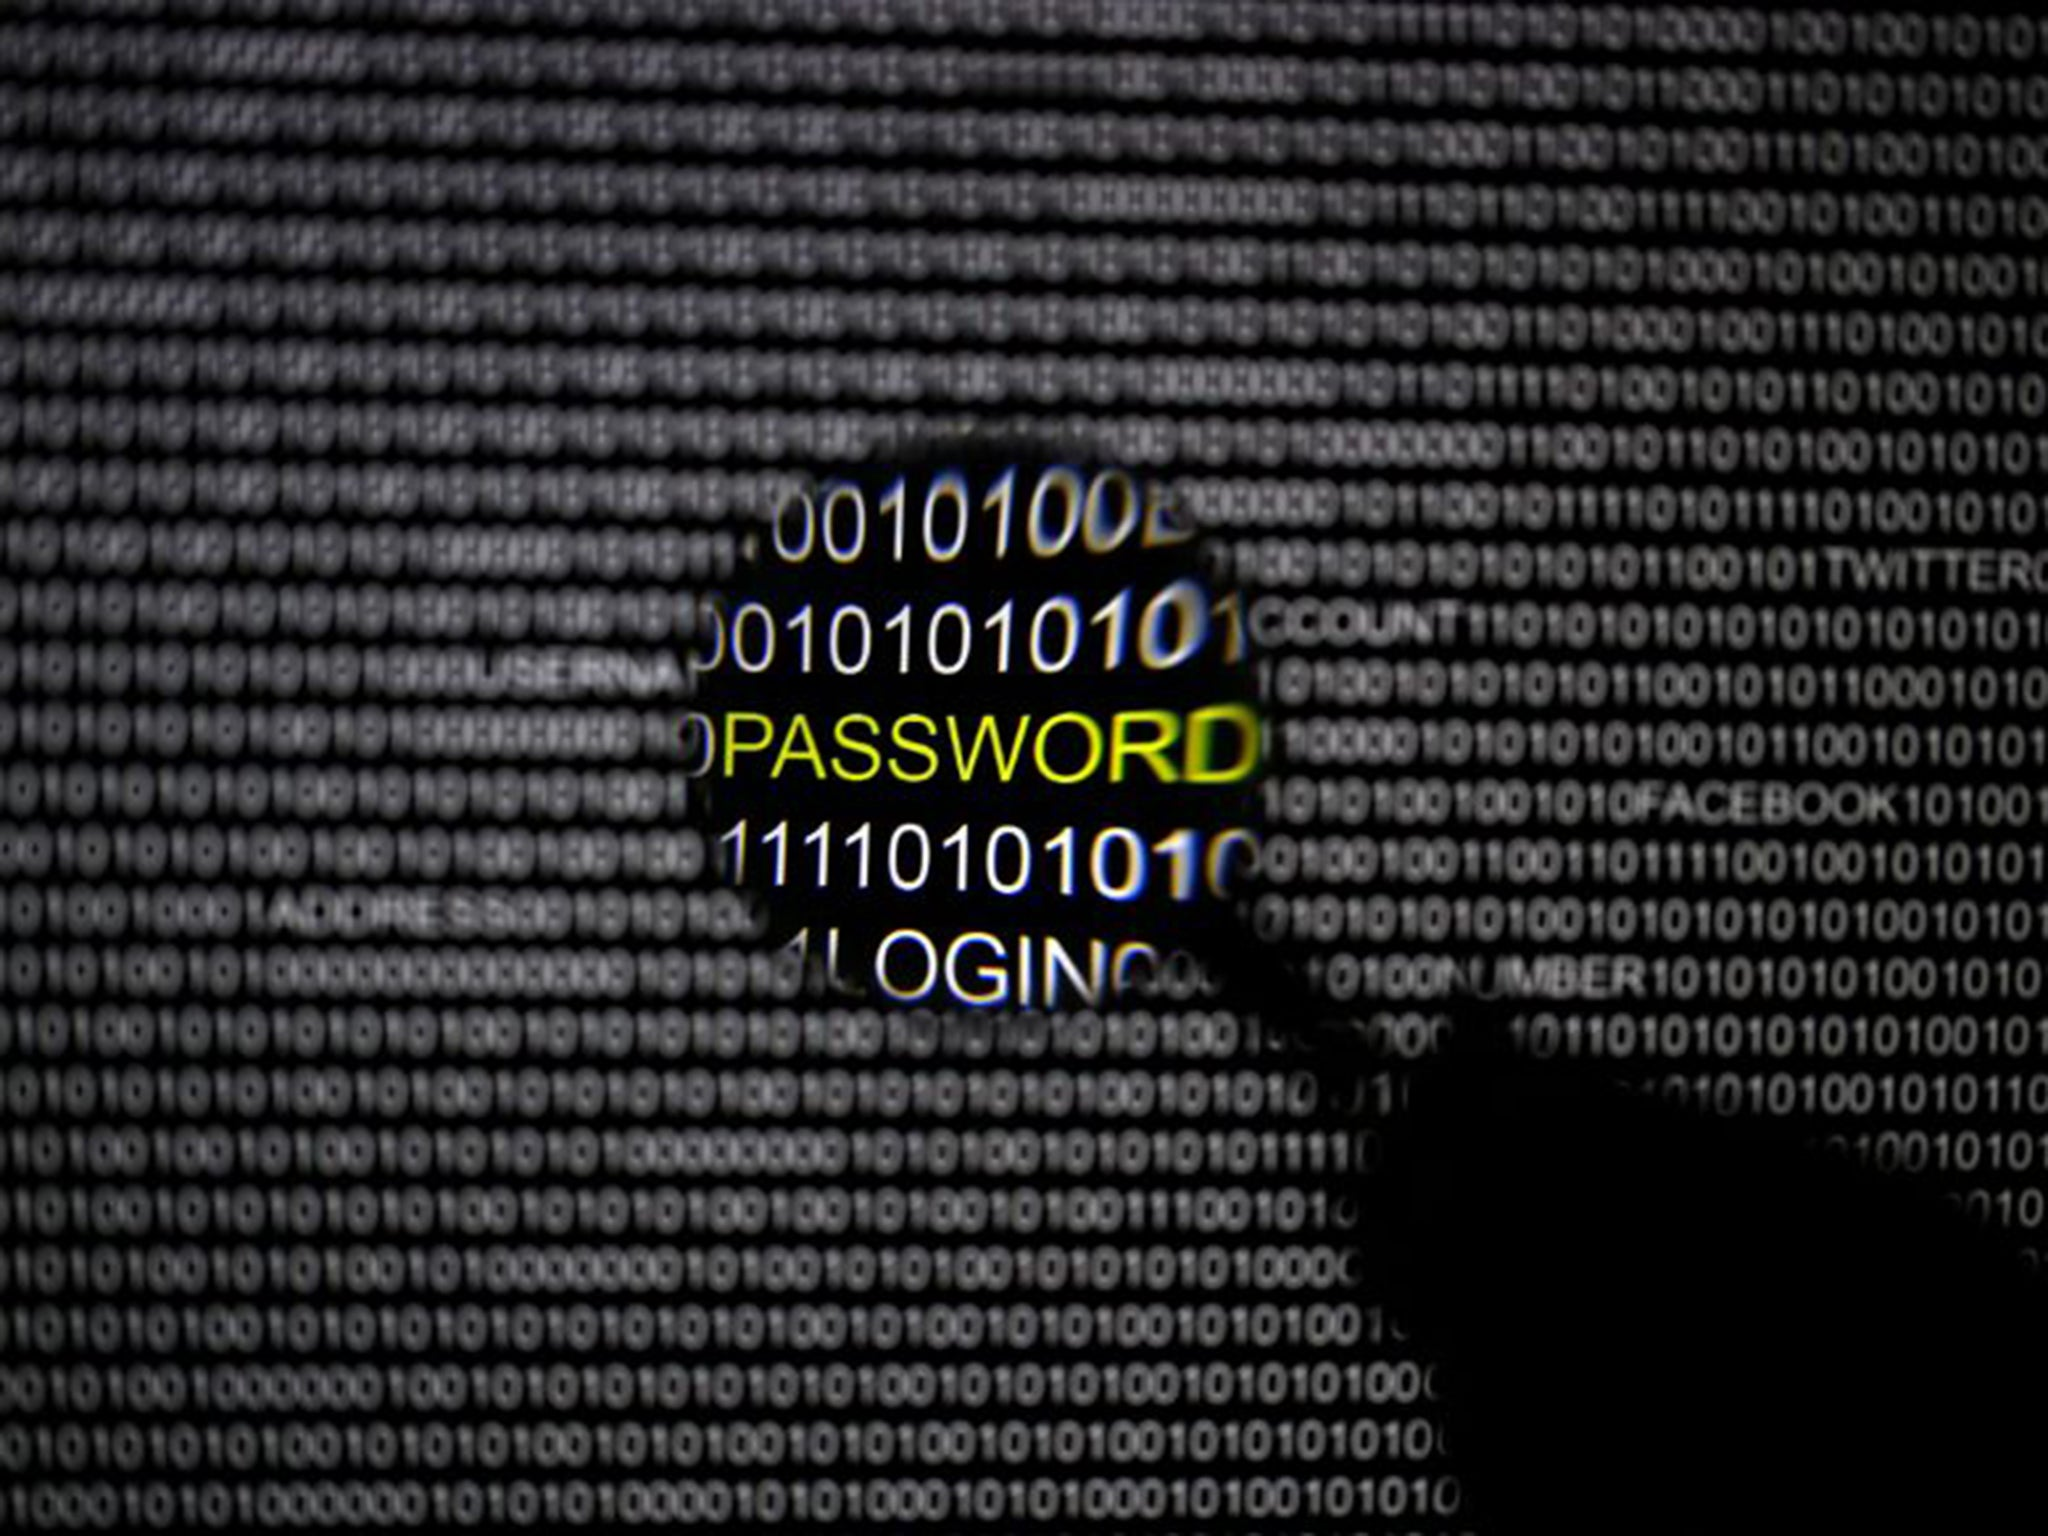 LastPass password manager suffers 'major' security problem | The